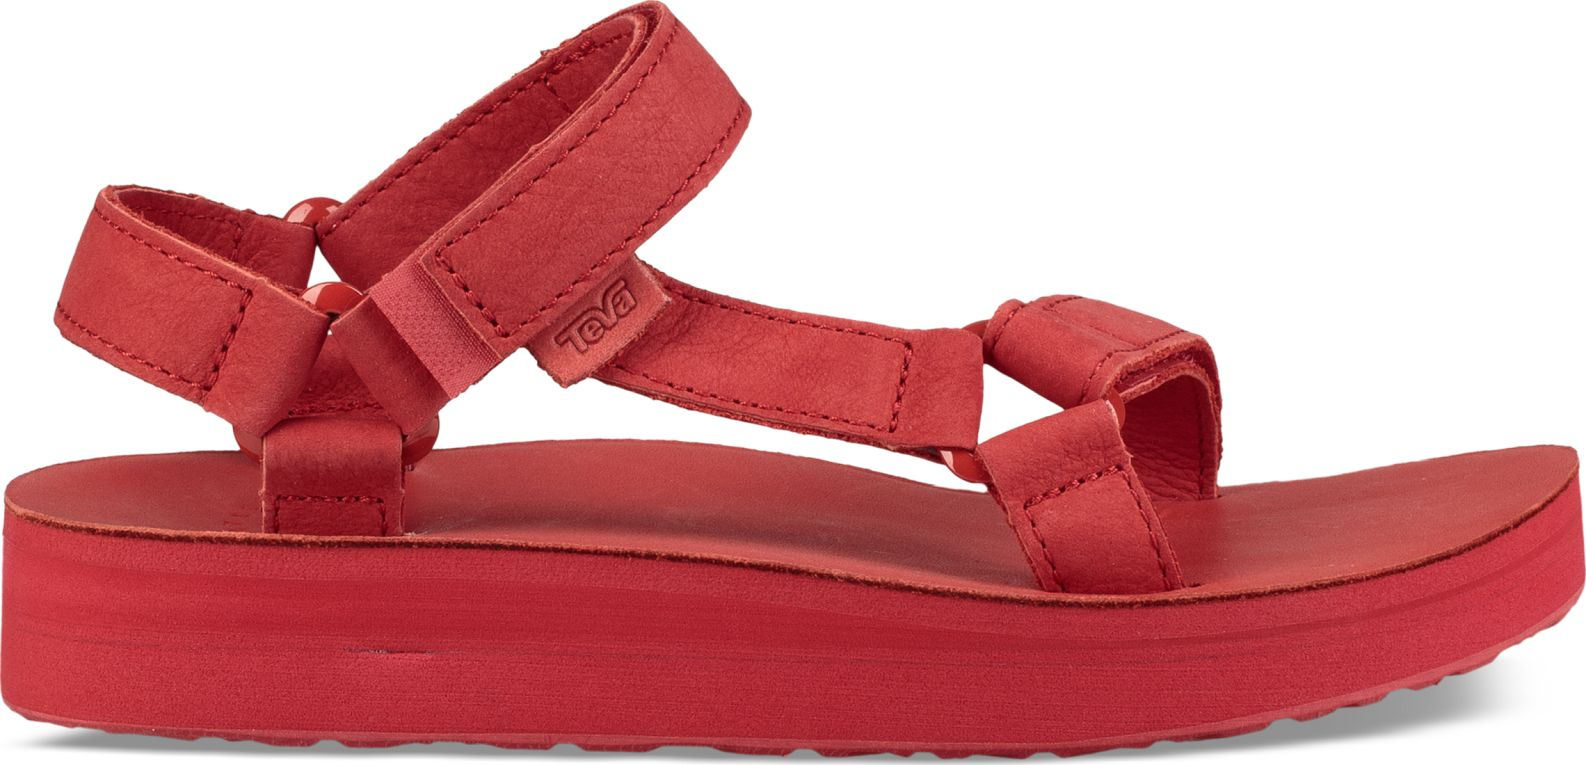 Teva Midform Universal Leather Racing Red 38